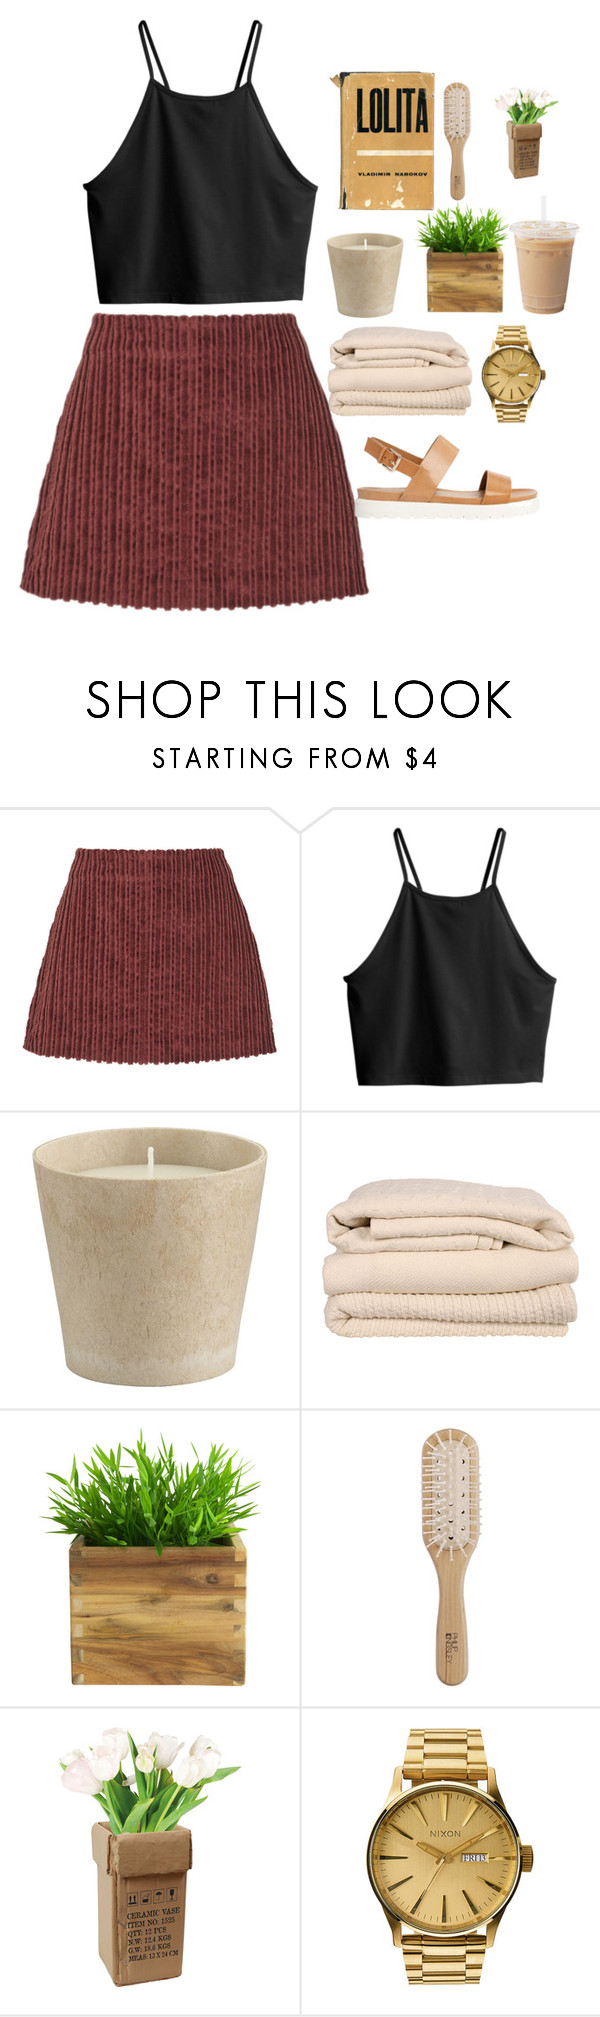 """""""Shiver"""" by chloeflo33 ❤ liked on Polyvore featuring Isa Arfen, H&M, Crate and Barrel, Brahms Mount, Philip Kingsley, Nixon, ALDO, women's clothing, women and female"""